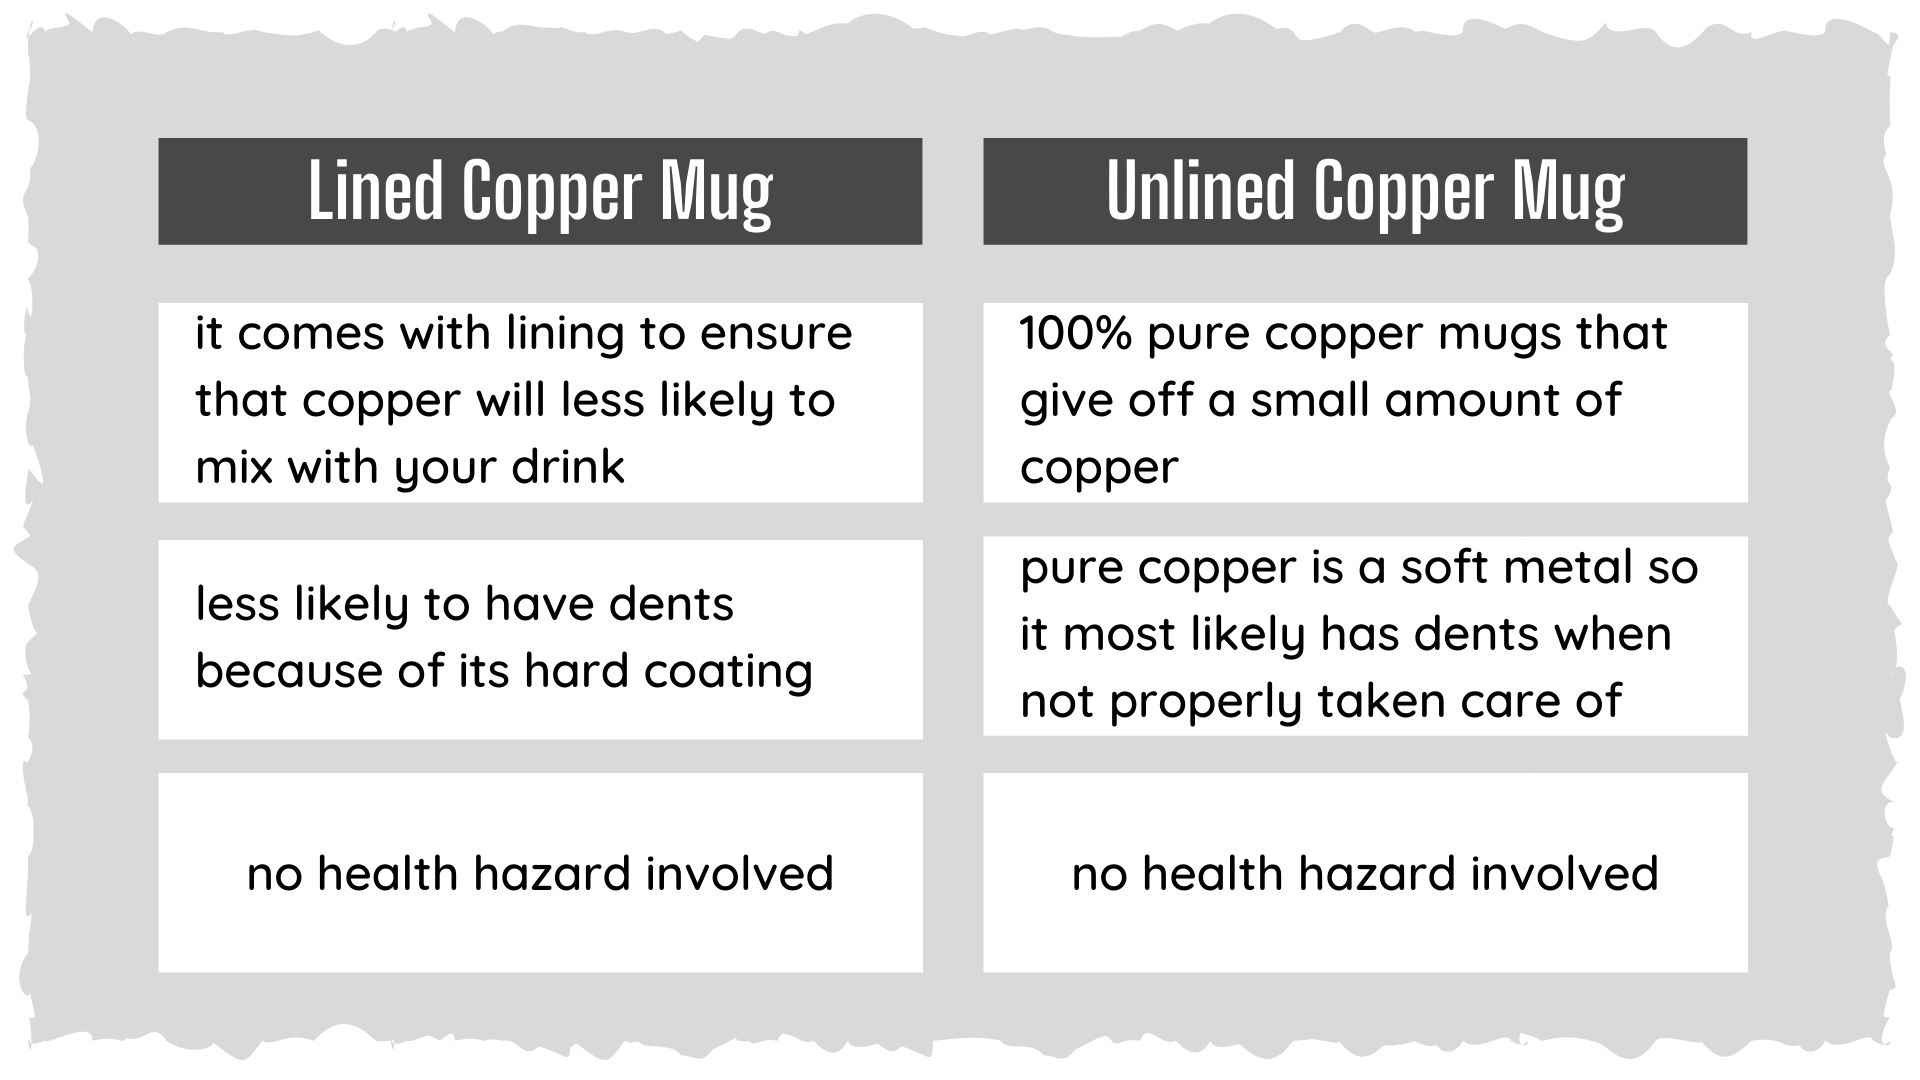 differences of lined and unlined copper mugs